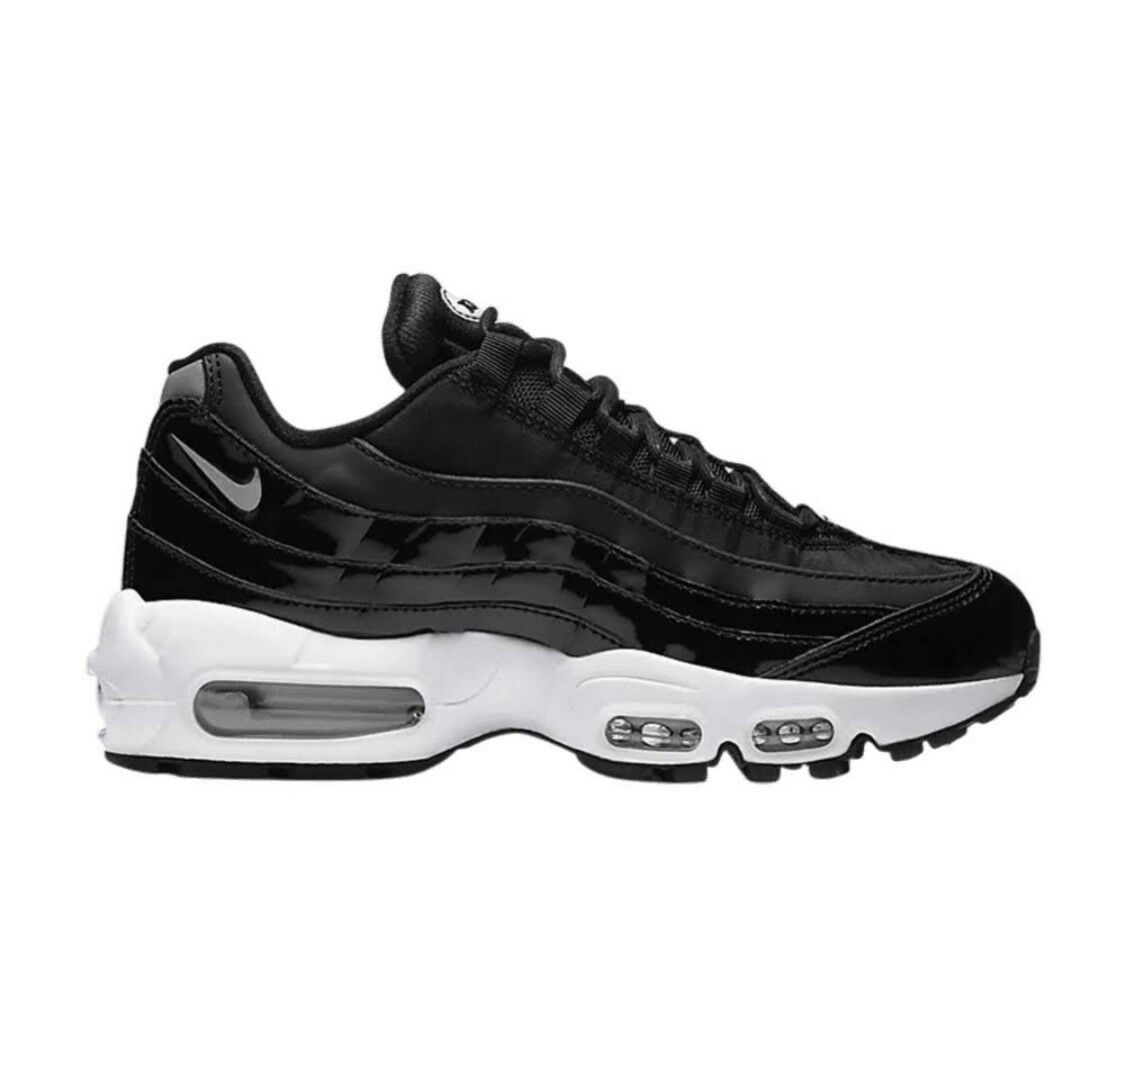 Womens nike air max 95 black and white size 9 brand new